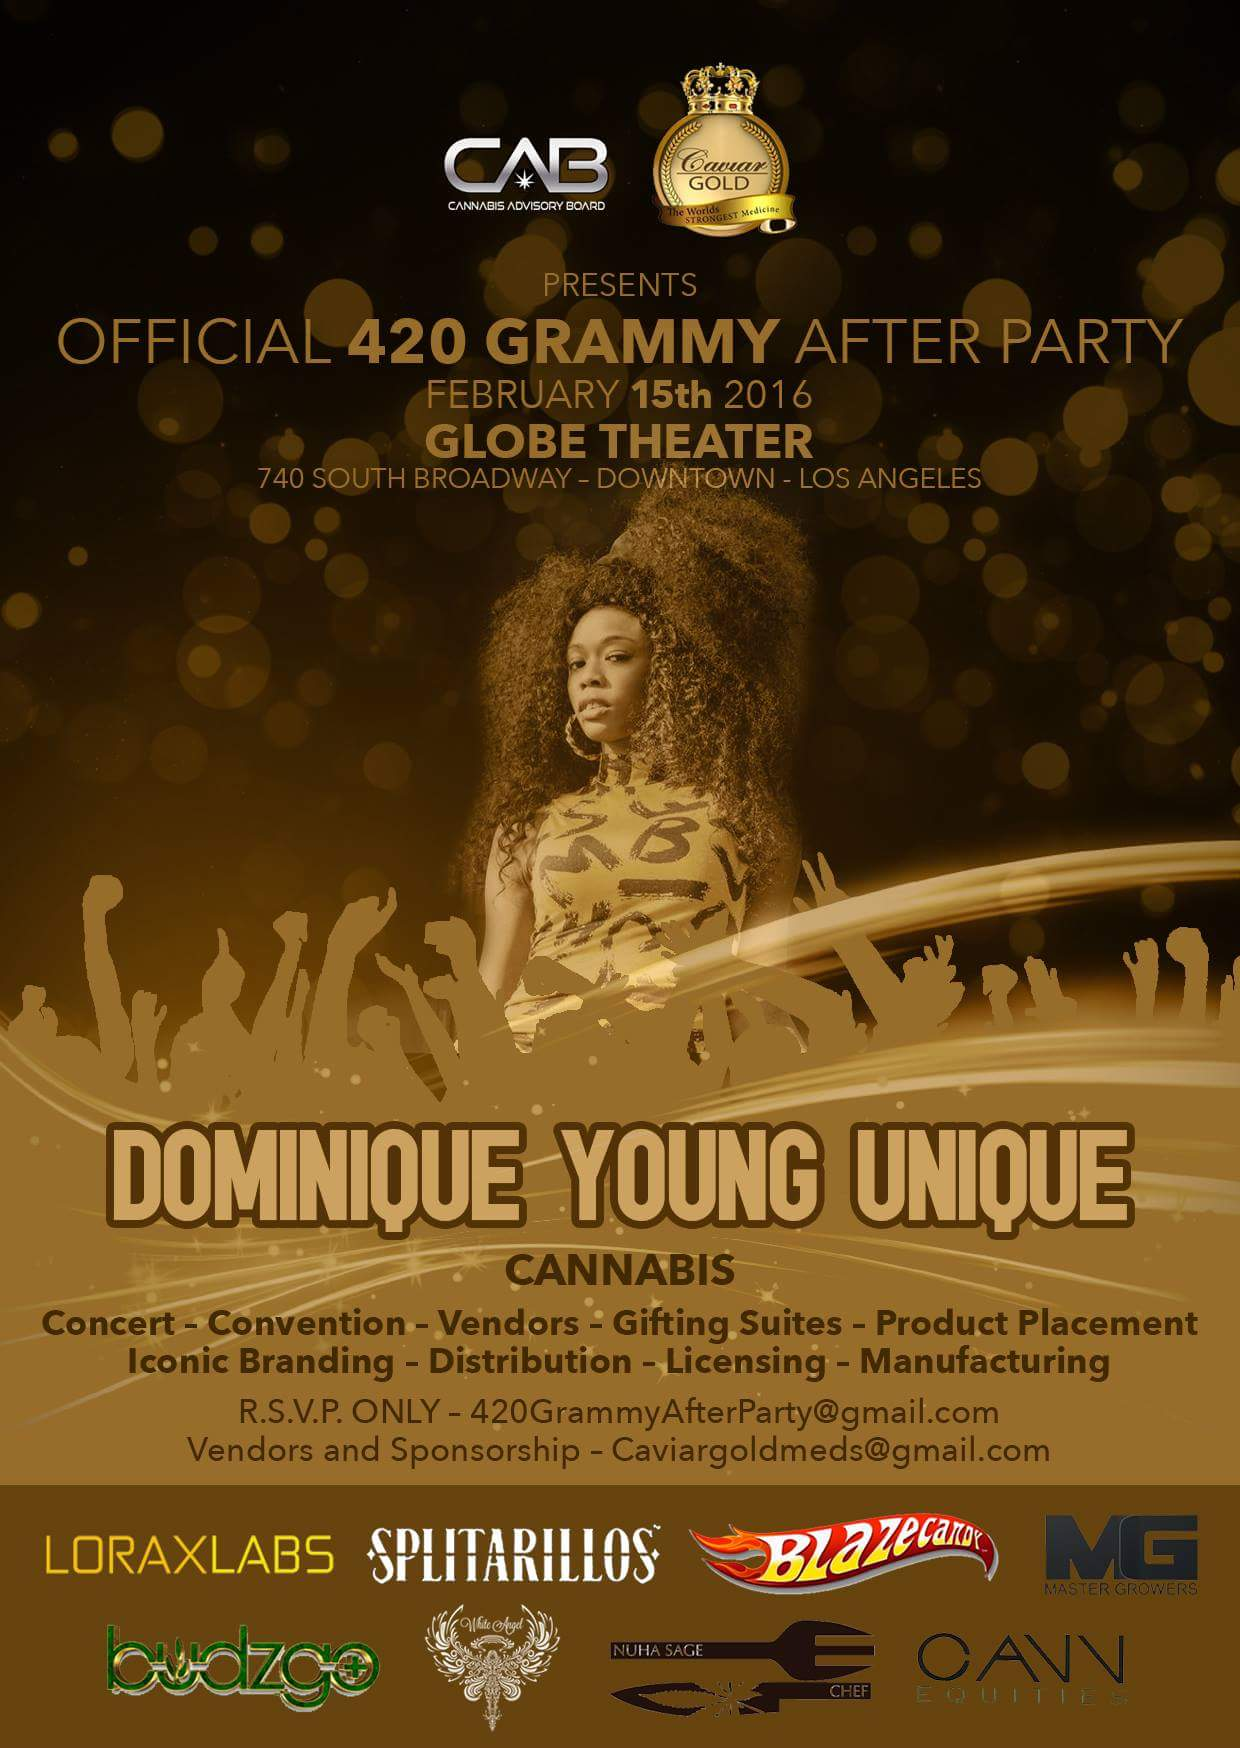 Dominique Young Unique set to perform at the Official 420 Grammy After Party